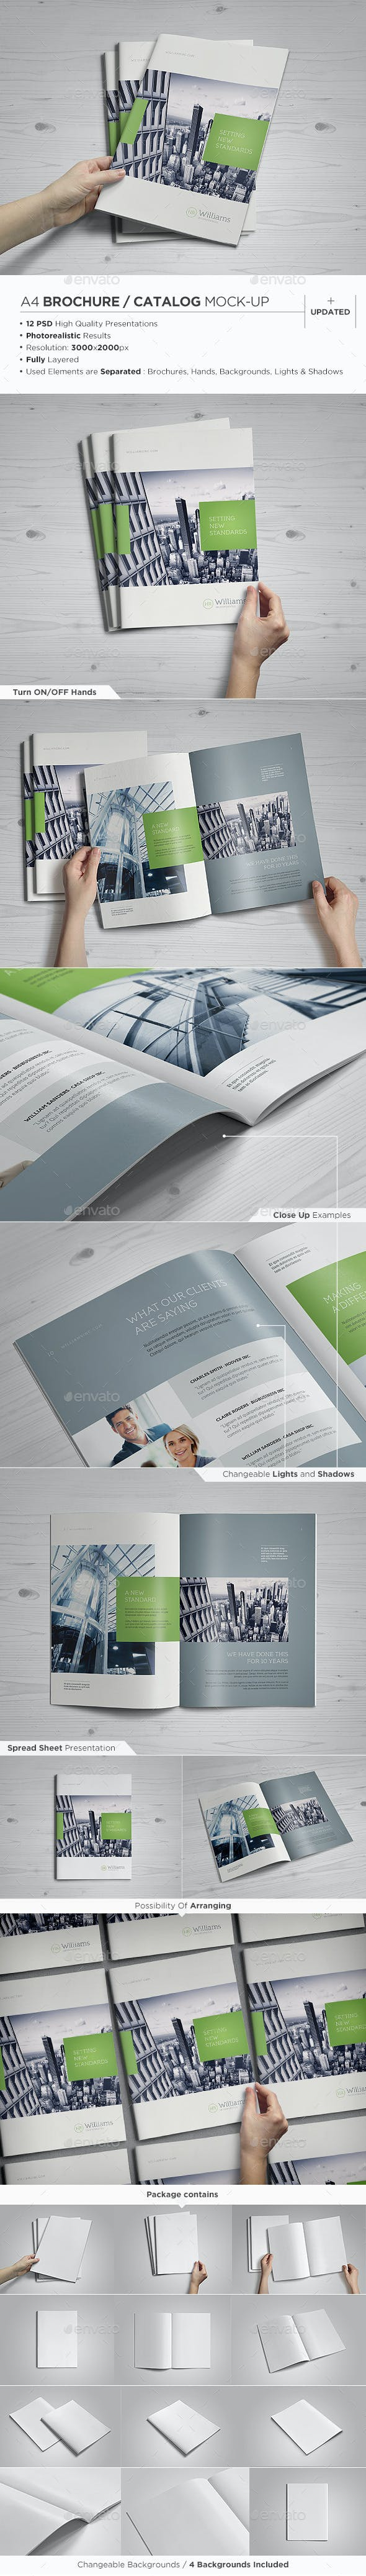 a4 brochure catalog mock up by punedesign graphicriver